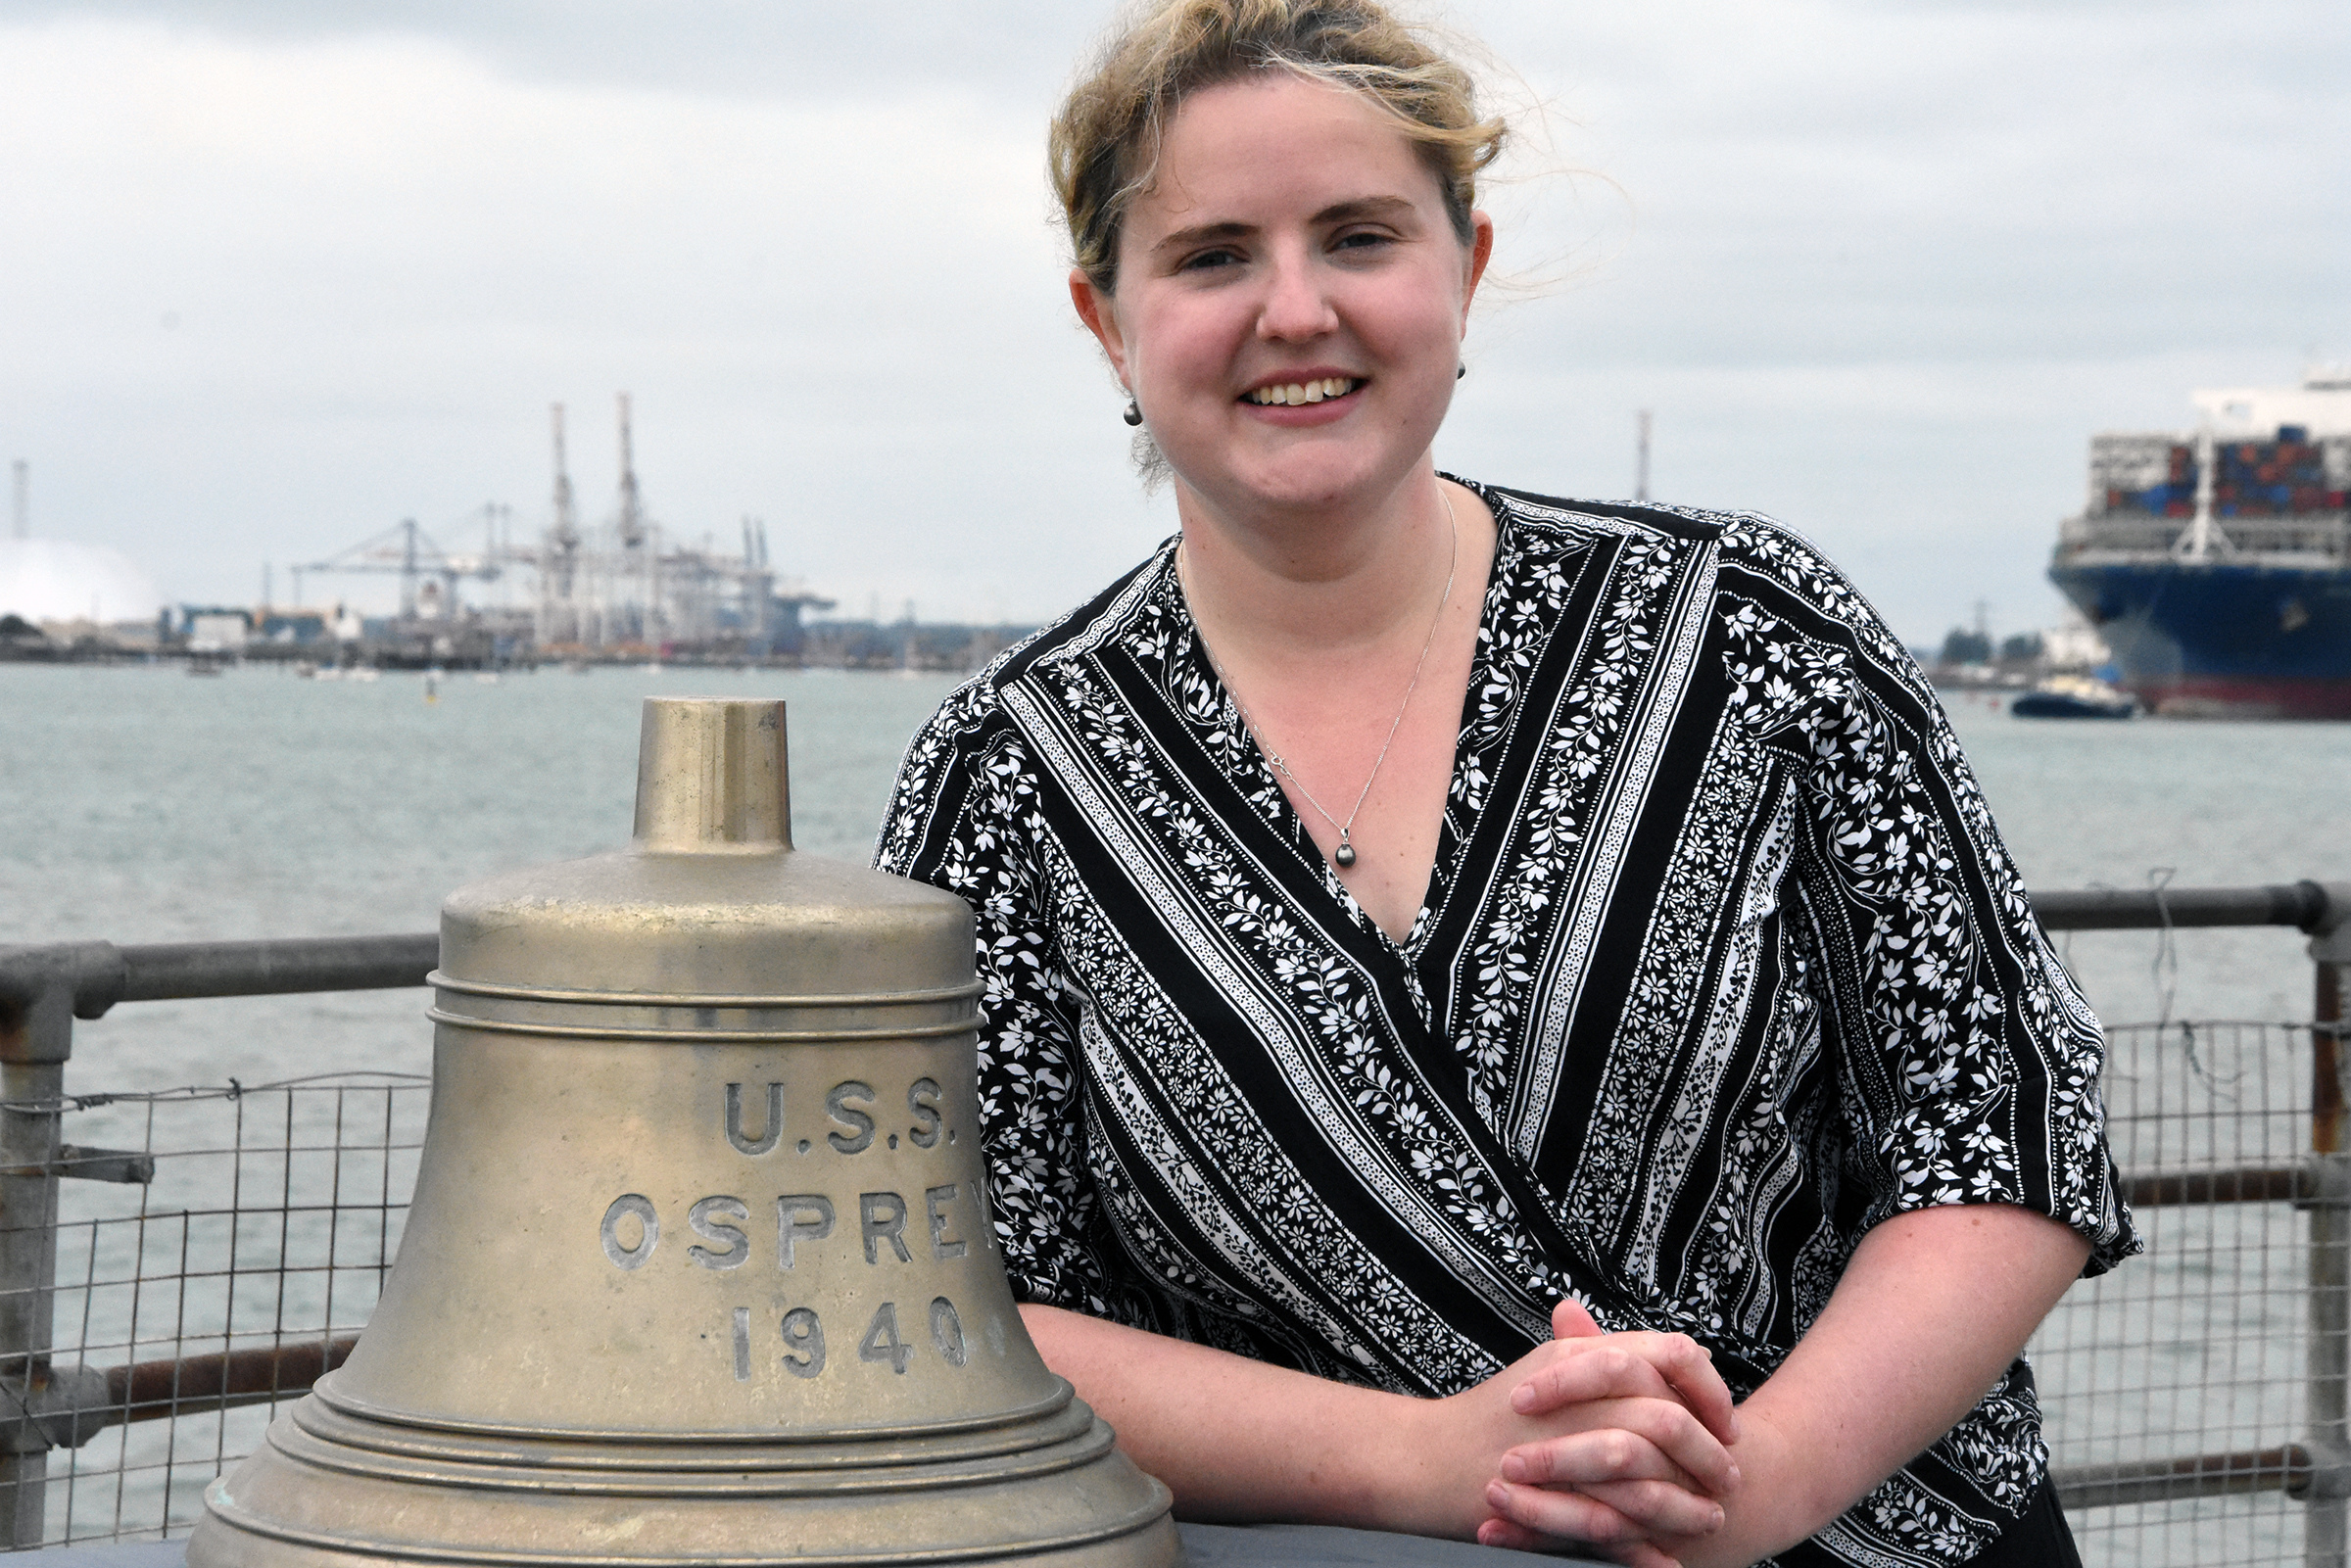 Bell from US Navy warship, USS Osprey, sunk off the Isle of Wight is heading home